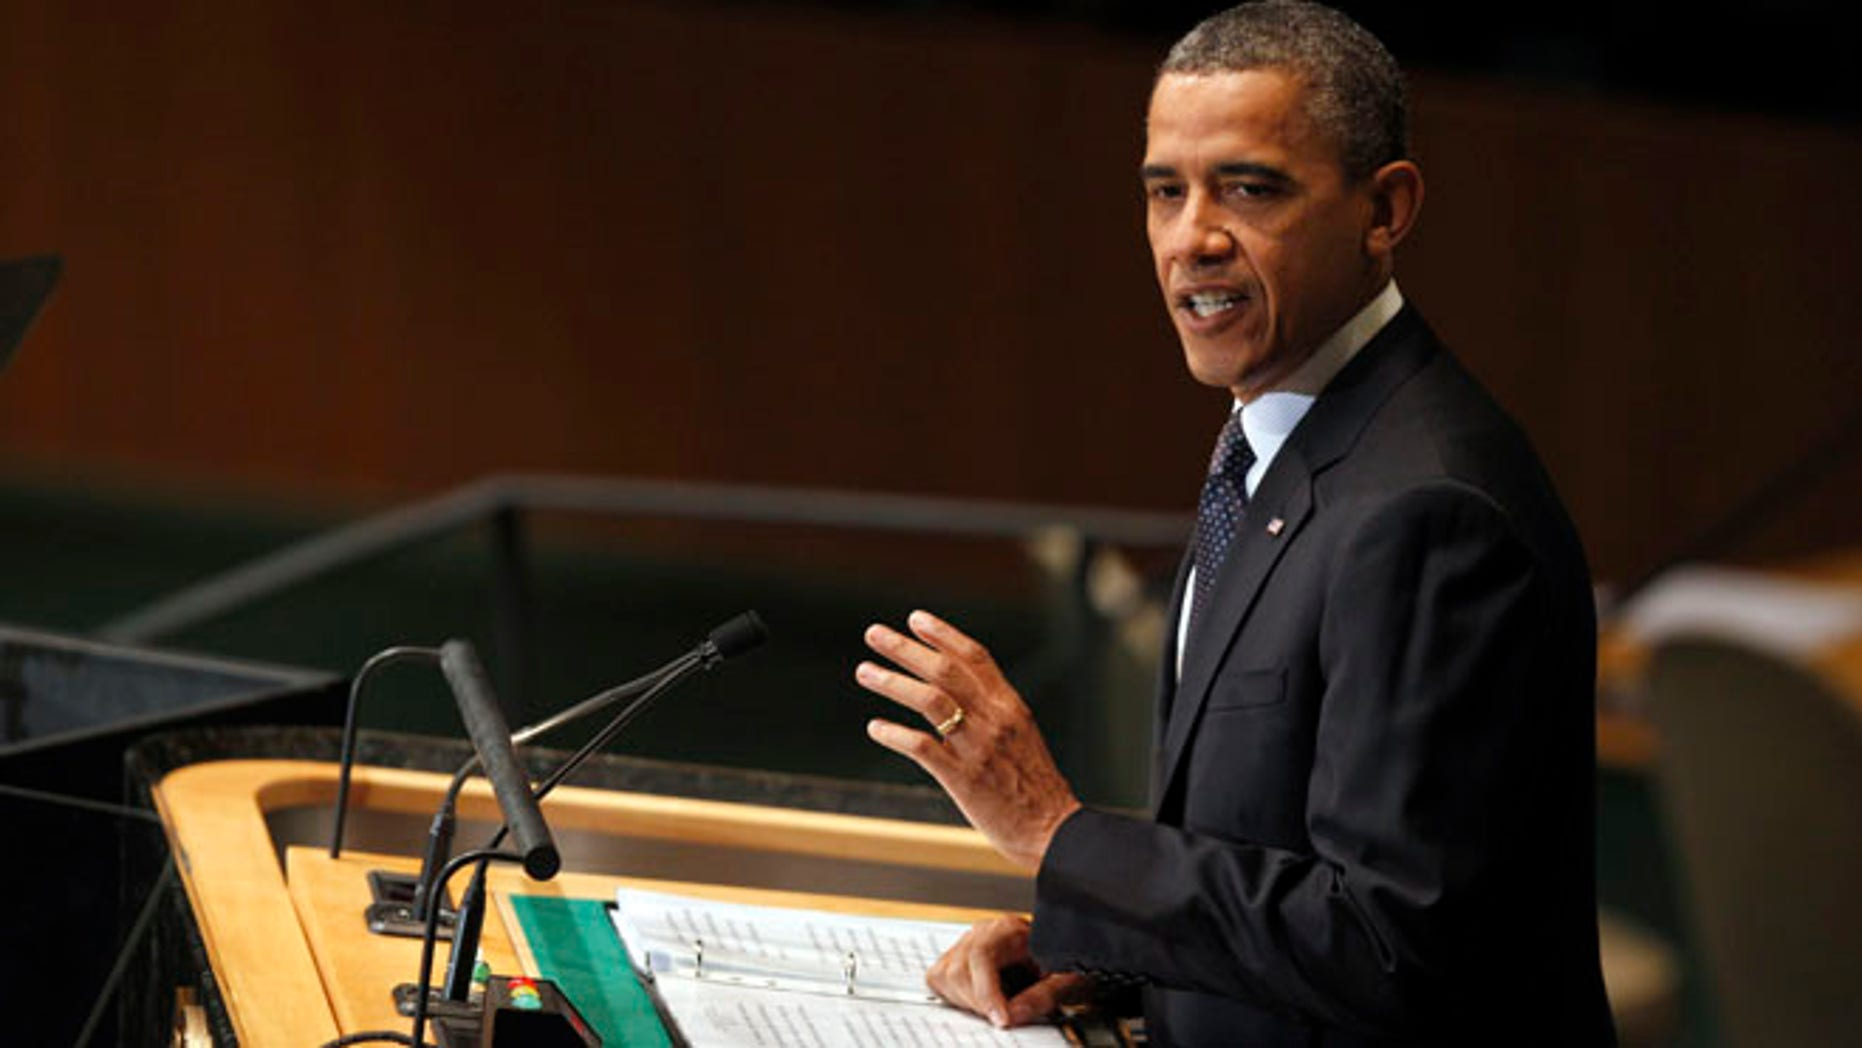 Sept. 25, 2012: President Obama addresses the 67th session of the United Nations General Assembly at U.N. headquarters.